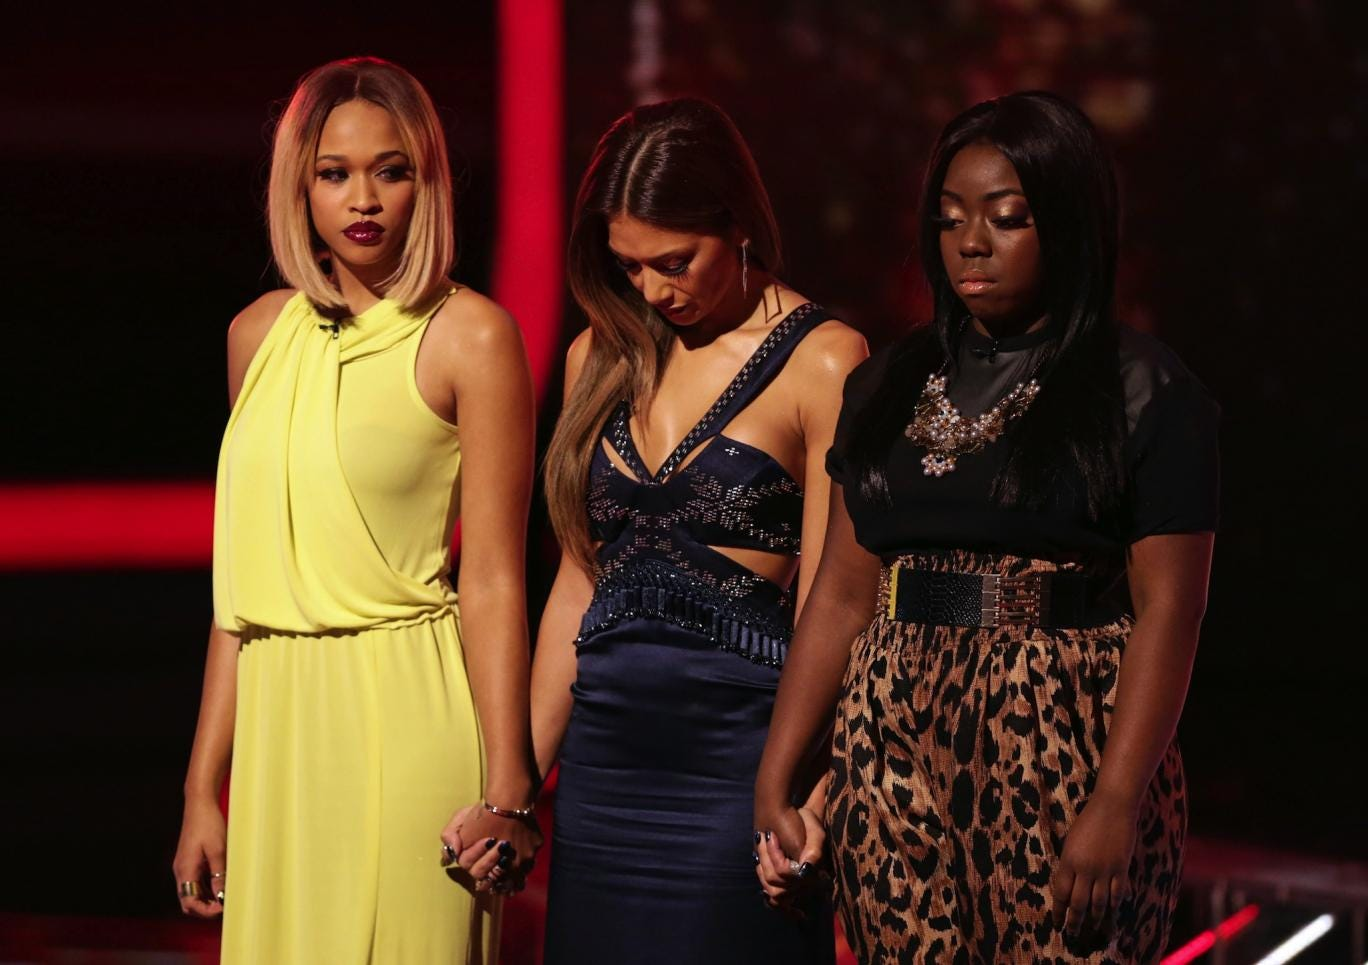 Hannah Barrett is sent home after Rough Copy and Nicole's other act Tamera Foster are saved